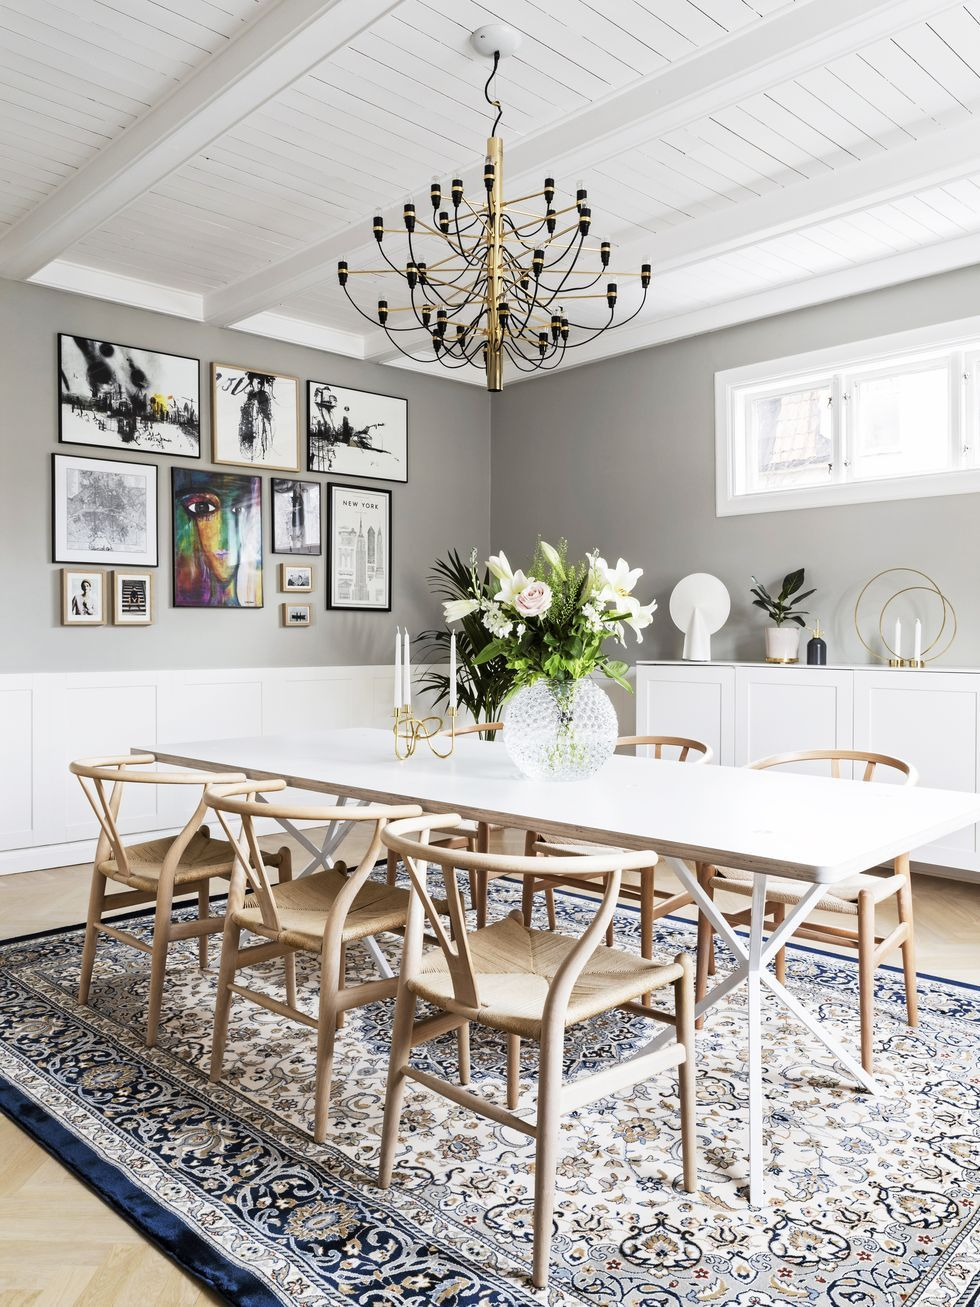 A beautiful bright and airy Scandinavian home